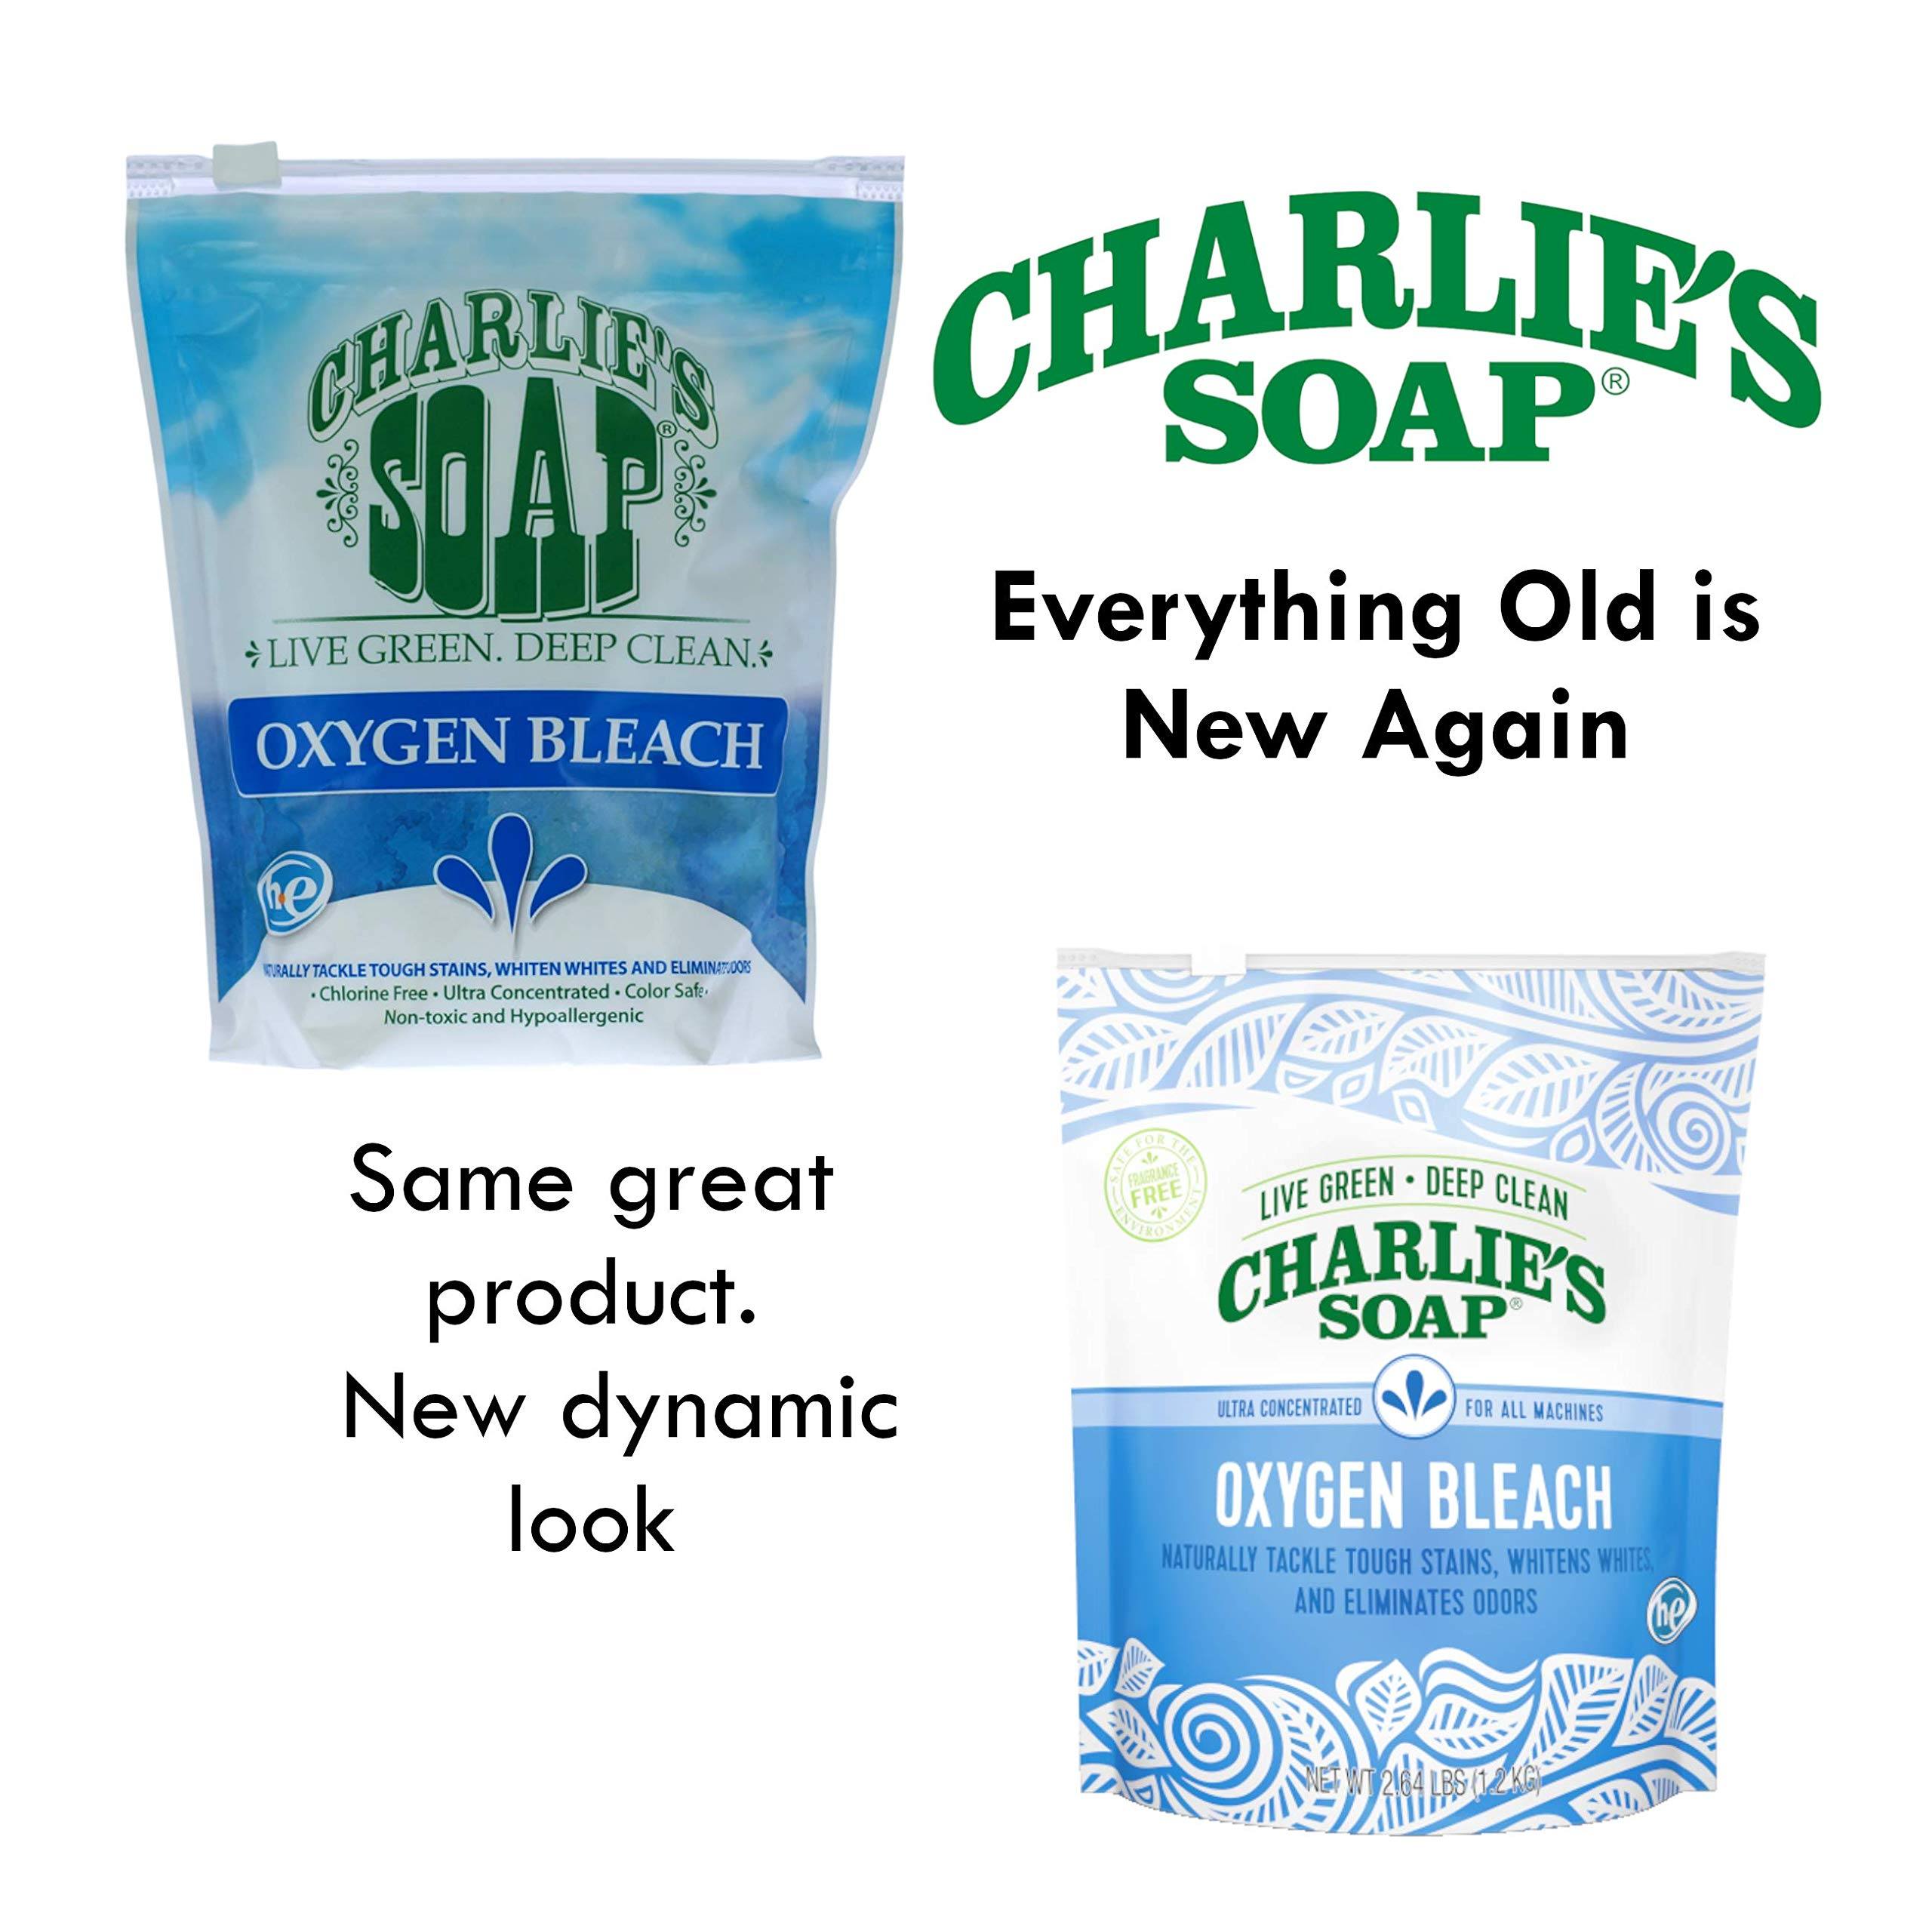 Charlie's Soap - Non-Chlorine Oxygen Bleach - 2.64 lb (6-Pack) by Charlie's Soap (Image #4)